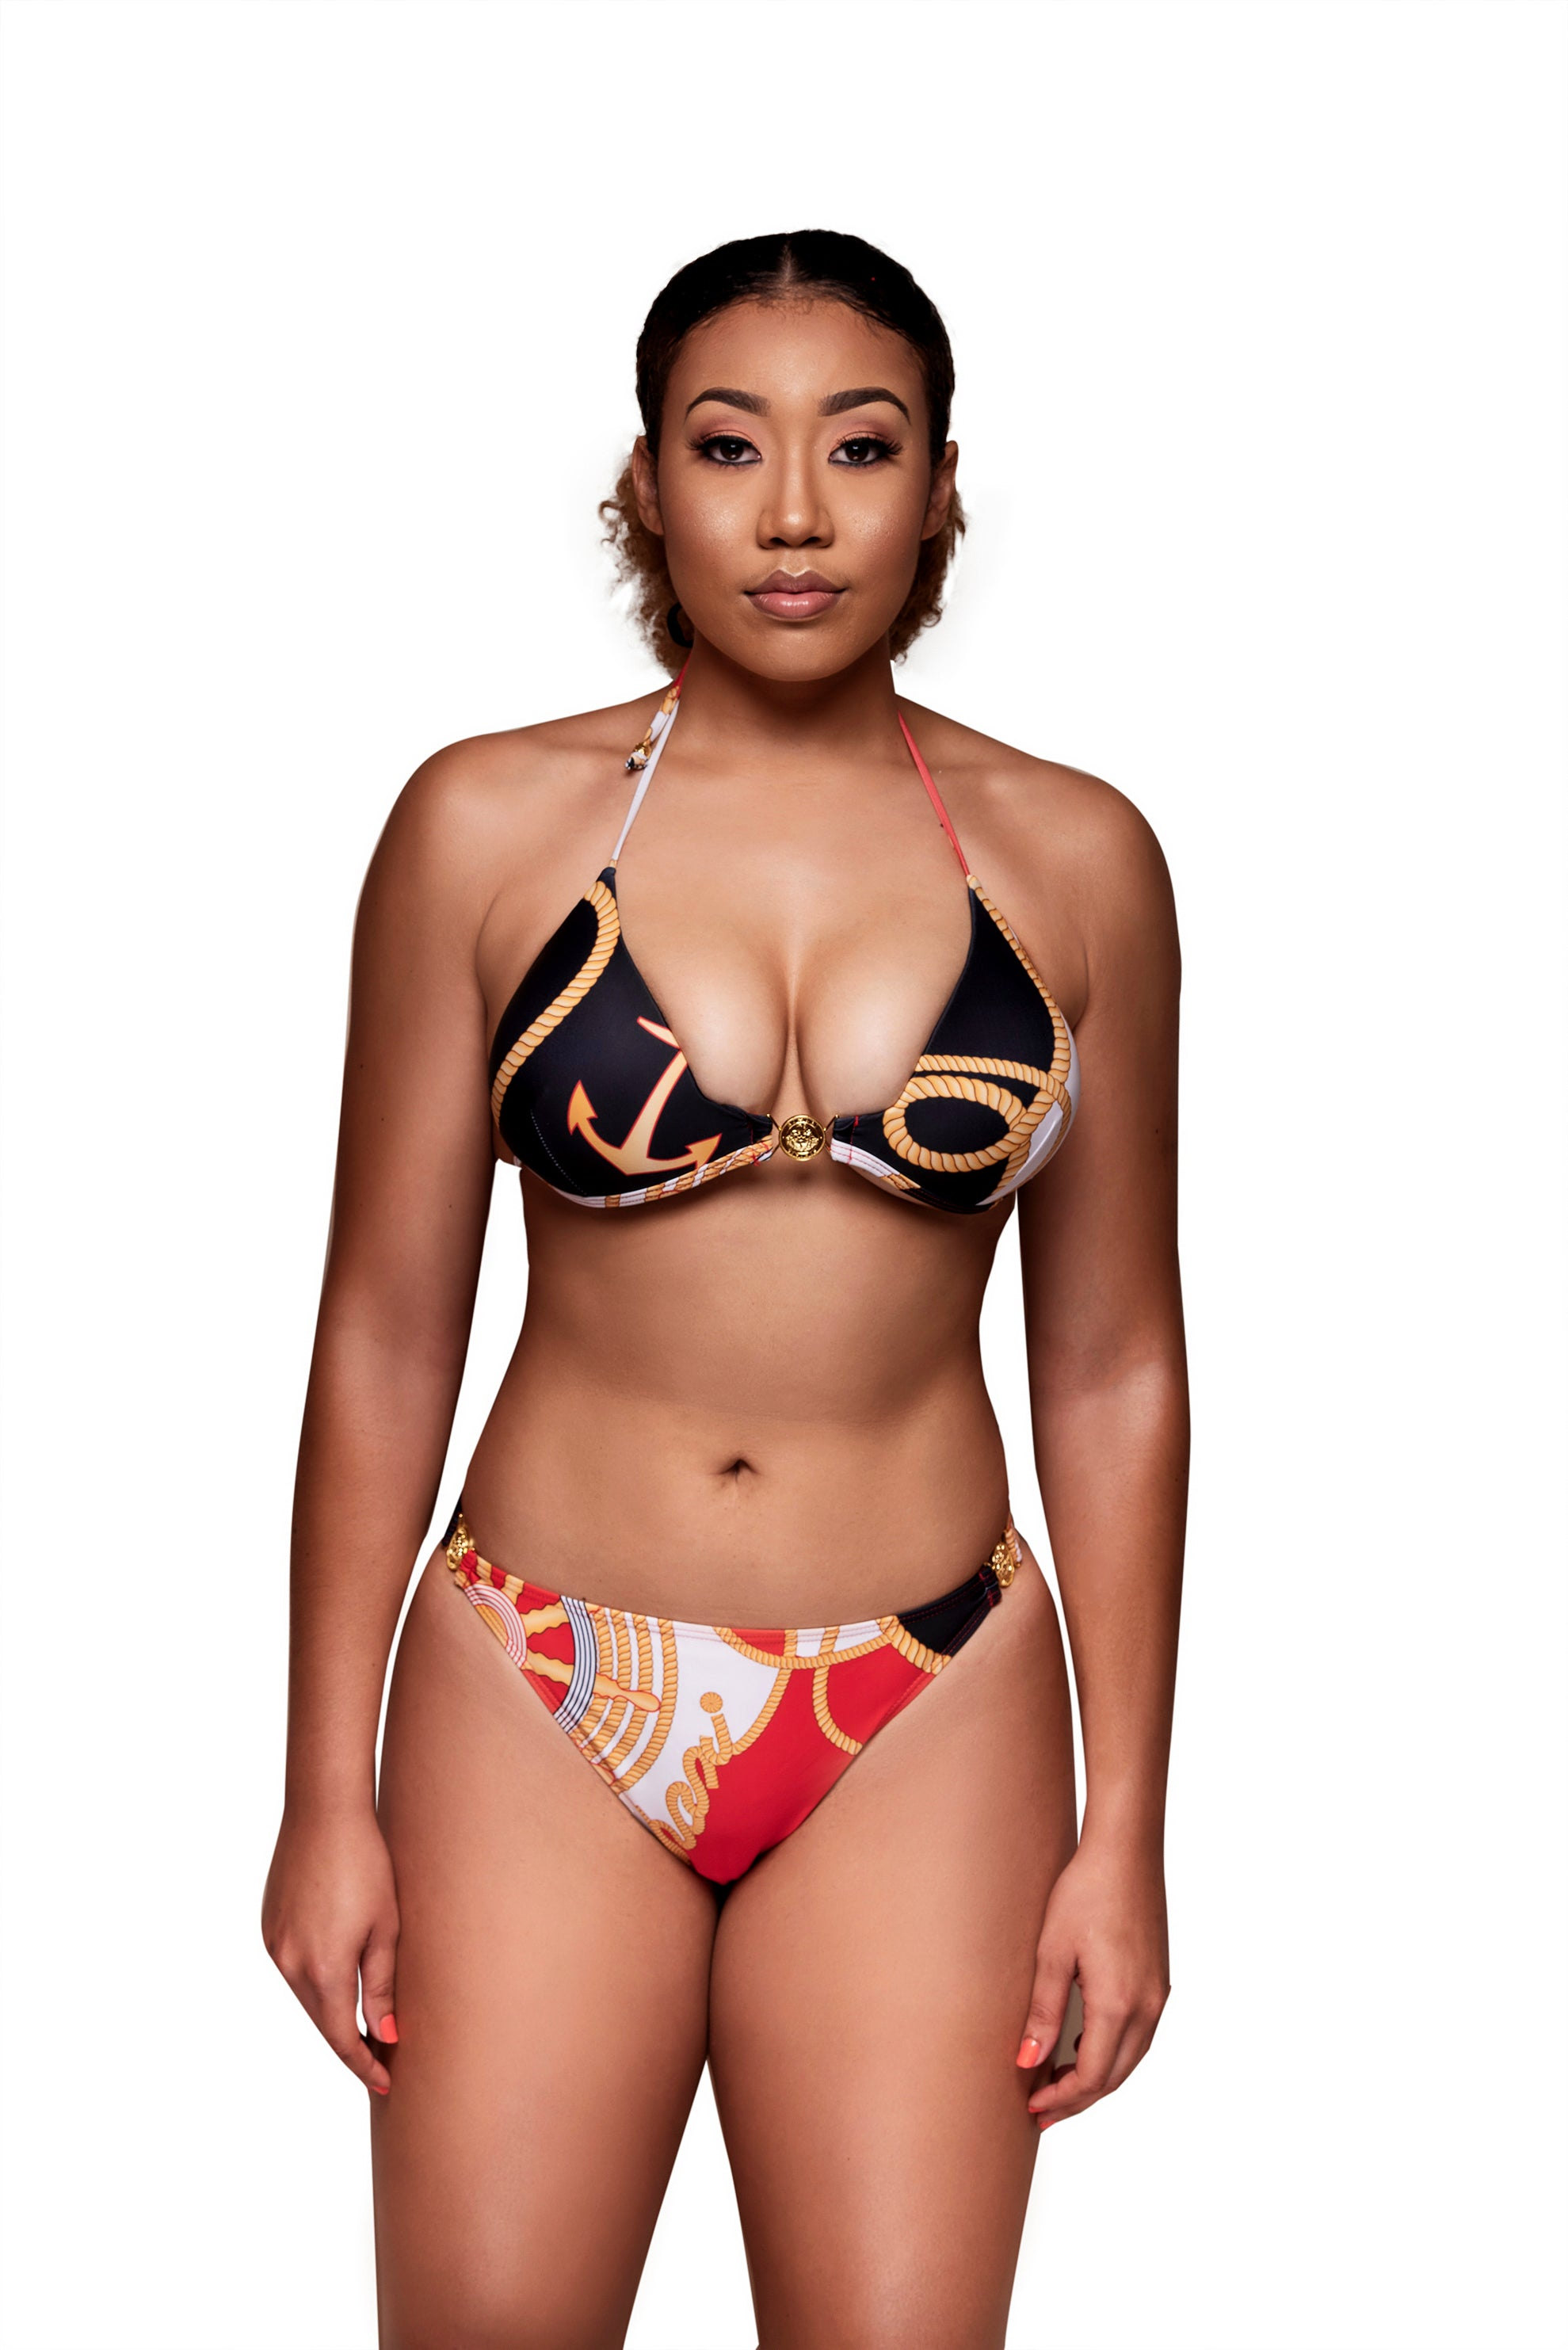 Marina The Medallion Medallion Marina The Bikini The Marina Medallion Bikini Bikini The 1JTlcFK